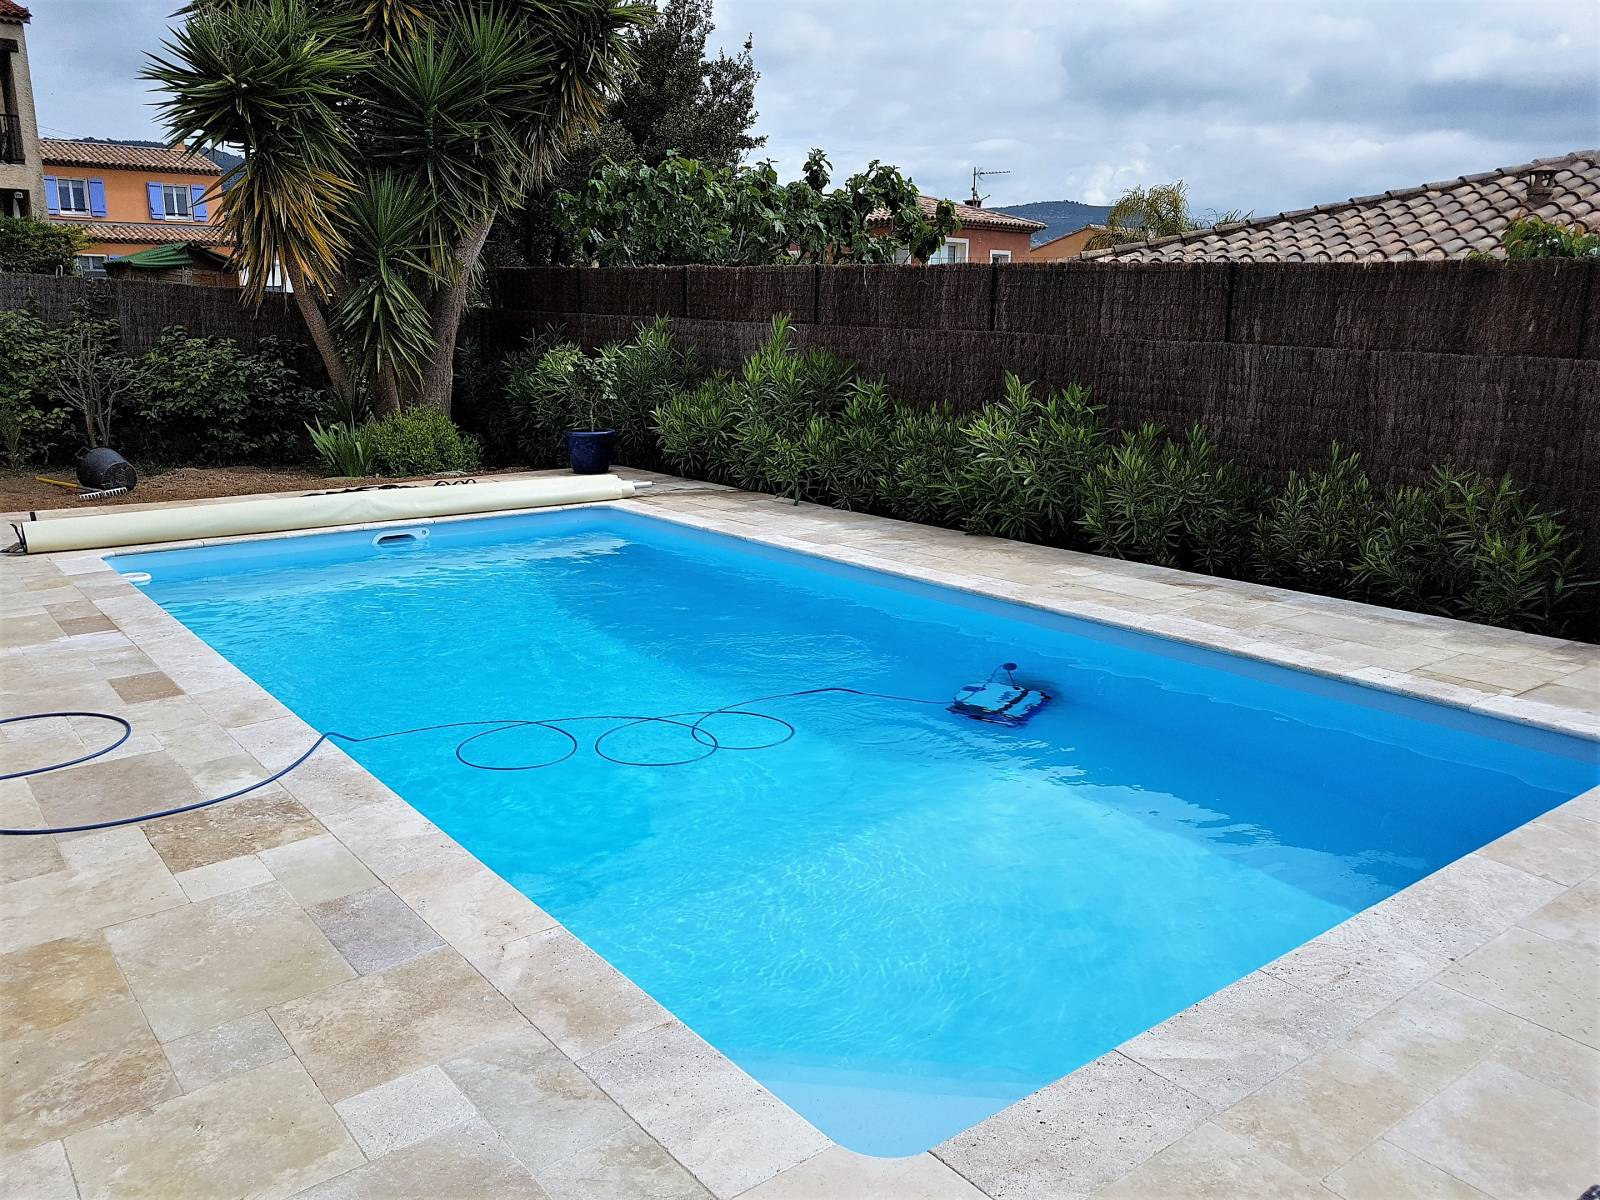 Piscine 8x4 m bleu rectangulaire jce piscines for Piscine demontable rectangulaire